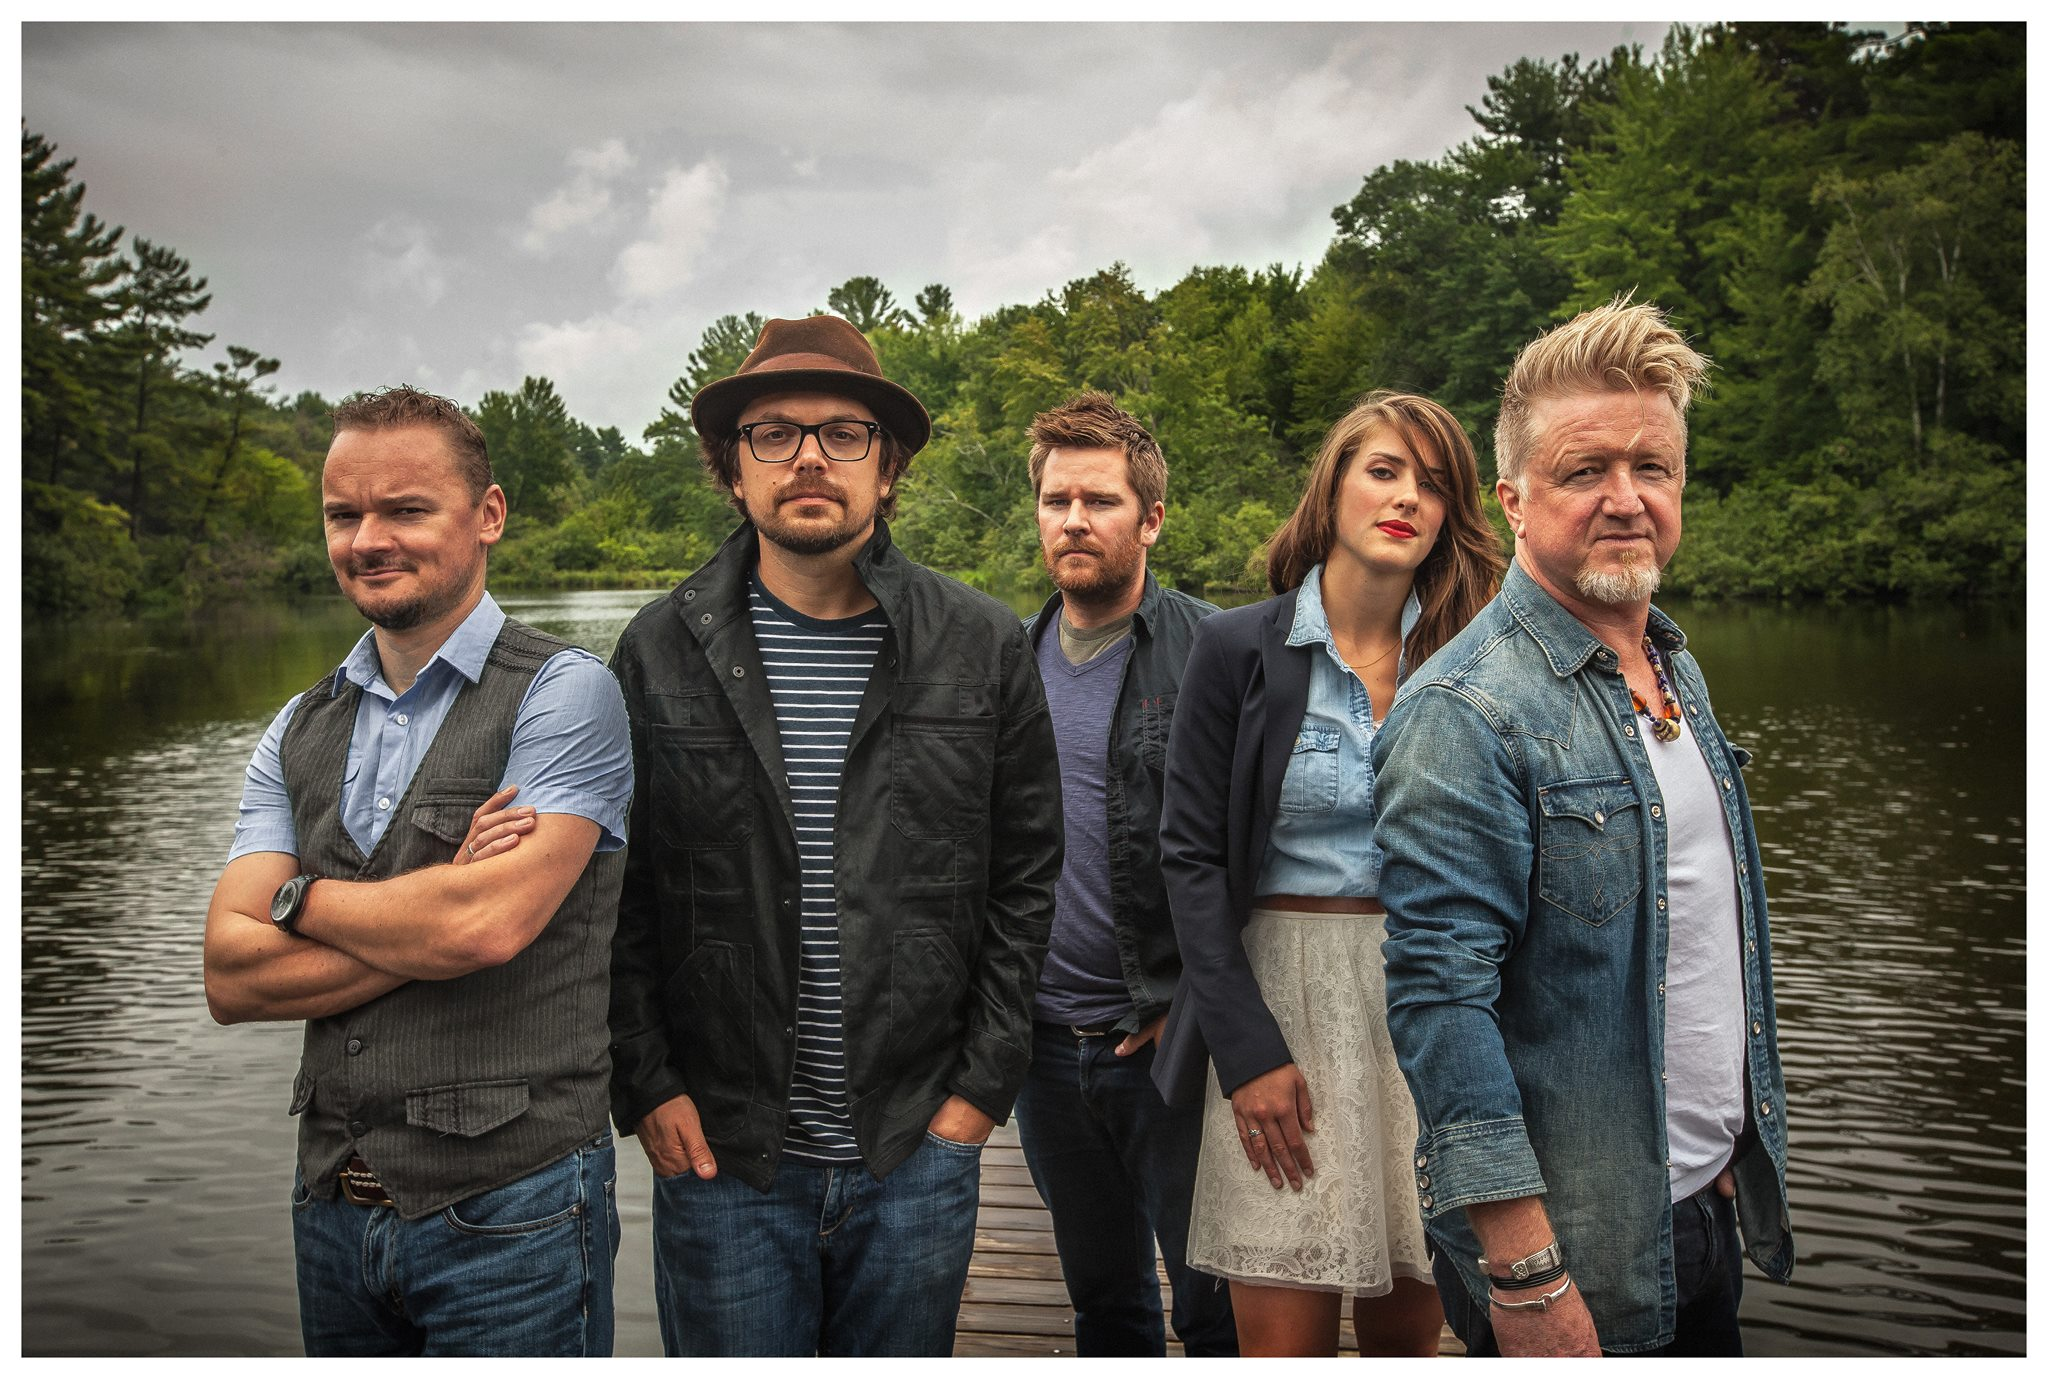 An Evening With Gaelic Storm - AN EVENING WITH GAELIC STORM